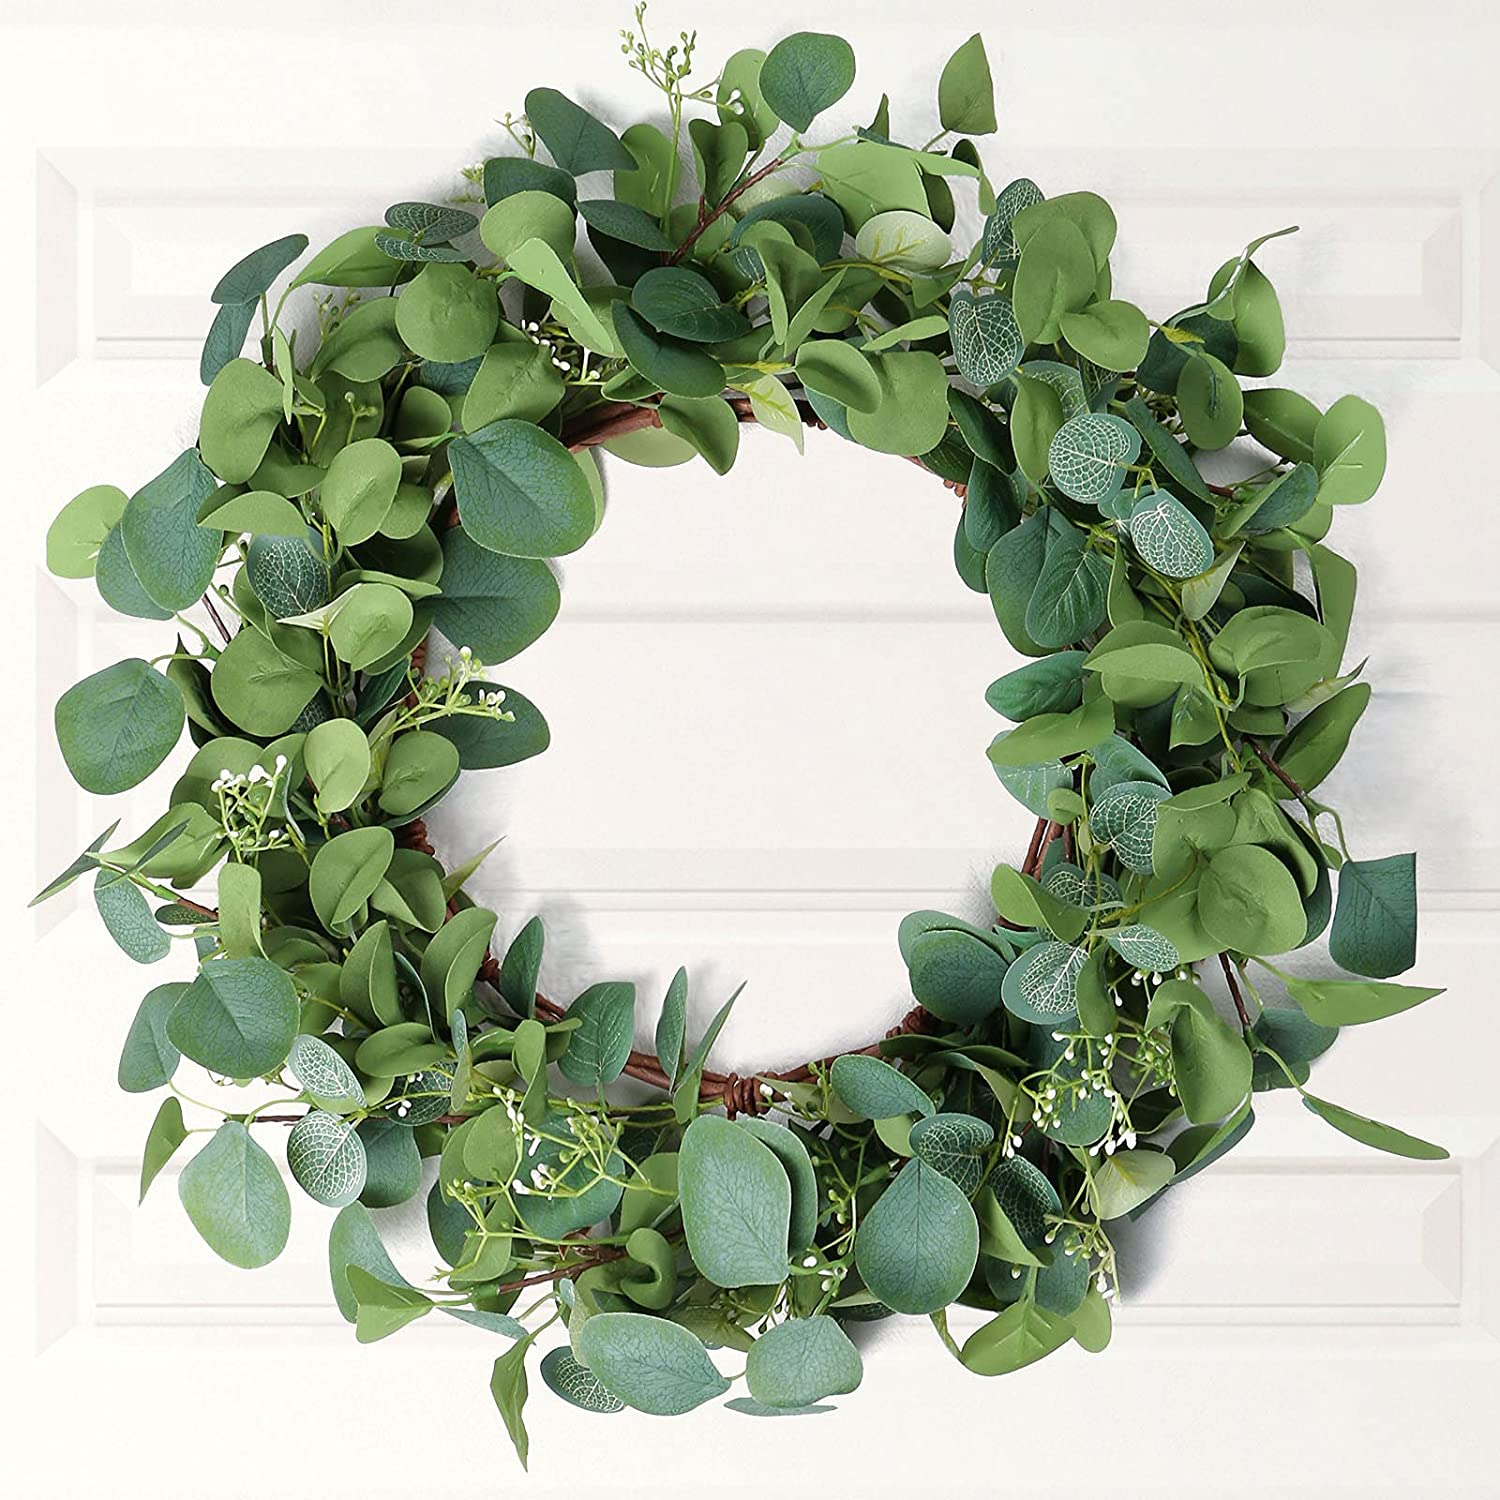 Forwedo Eucalyptus Wreath, Wreaths for Front Door Outdoor Spring Summer All Seasons, Green Greenery Fresh Large Artificial Farmhouse Wreath Home Wall Hanging Plant Decor (Green- Eucalyptus Wreath)